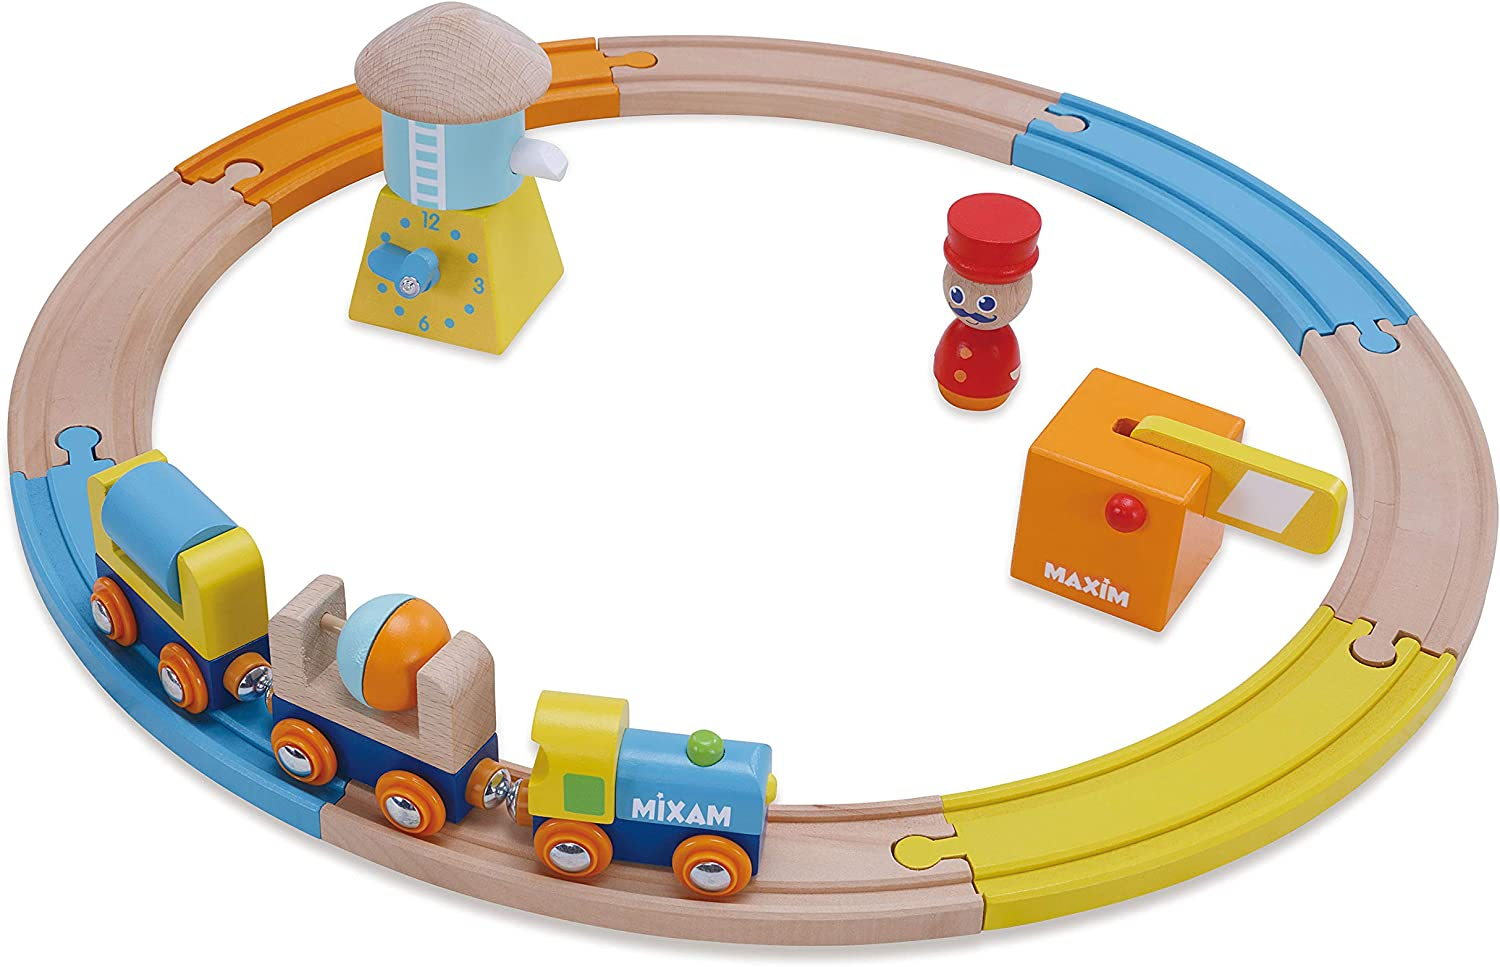 Wooden Railway Train Set for Kids Boys /& Girls Love 8 Piece Starter Track Pack with Water Tower Toddlers Ages 18mo Plus 2 Cars Compatible with All Major Brands Conductor Engine Crossing Gate